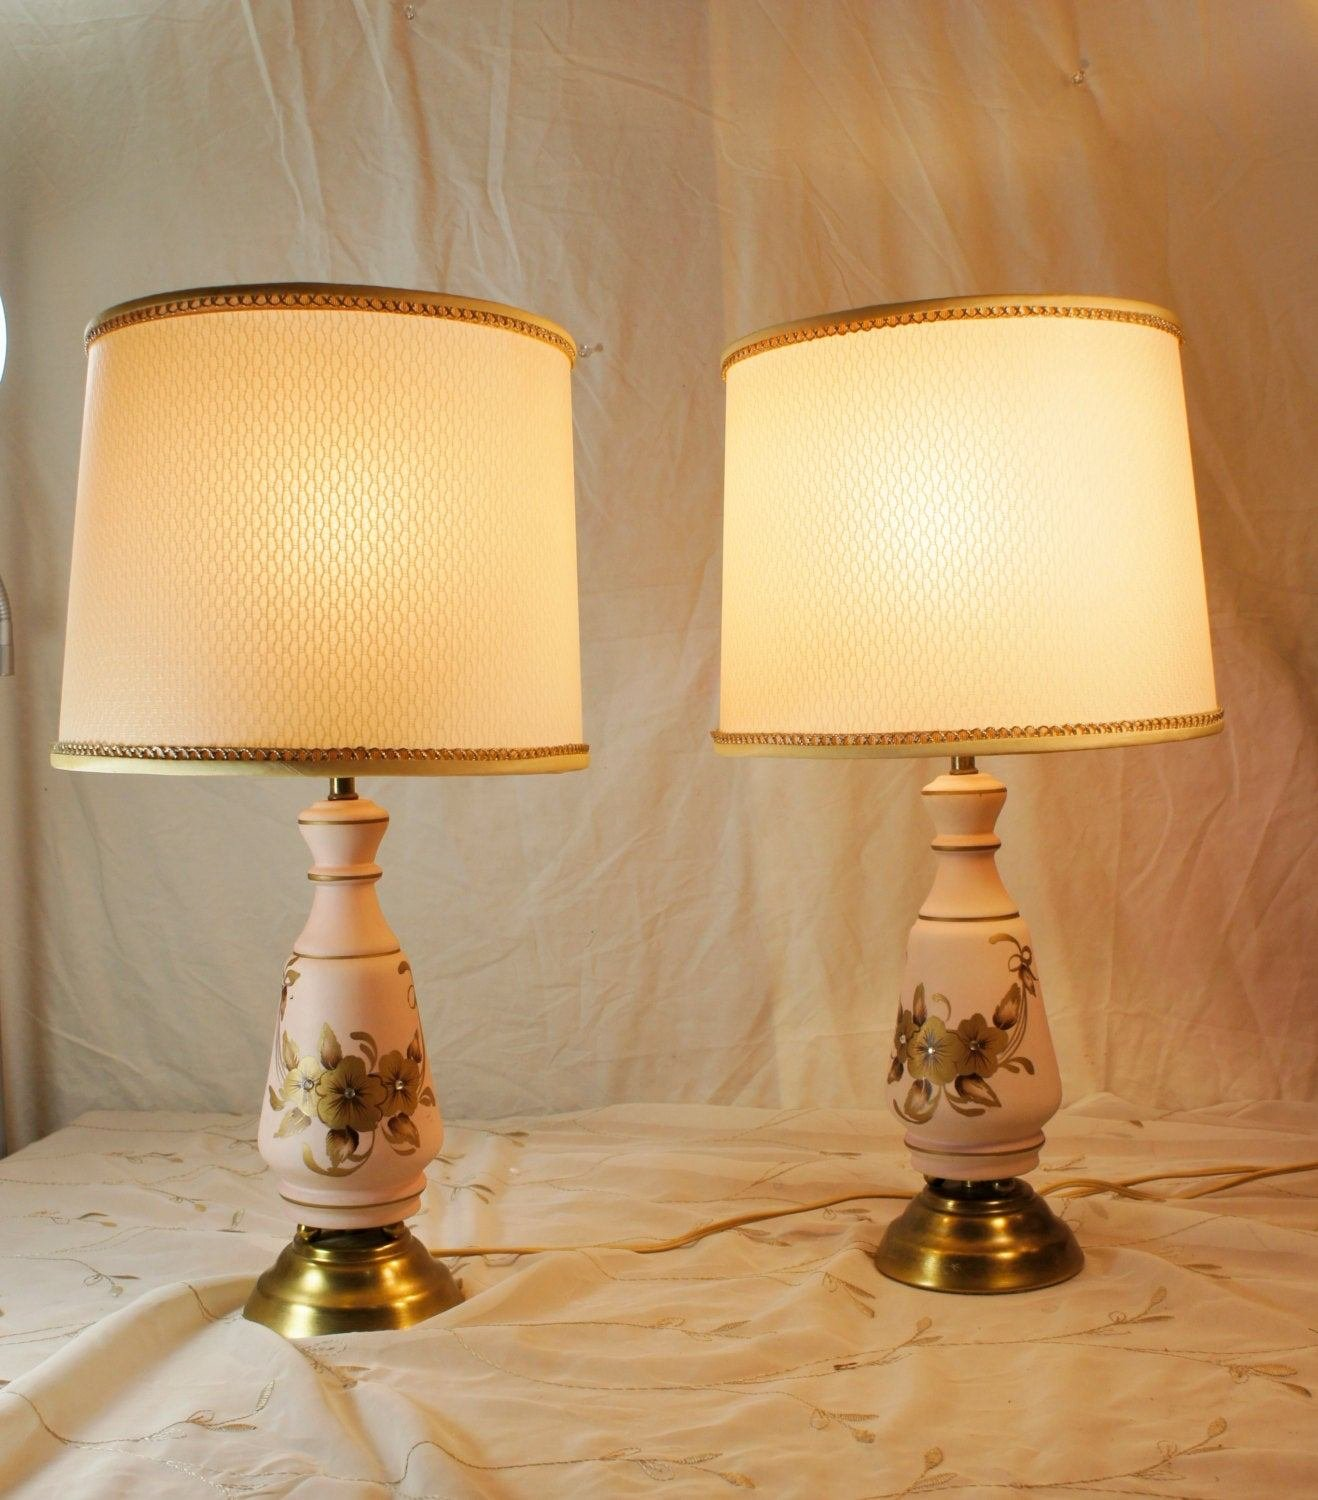 Best Pair Pink And Gold Bedroom Lamps With Shades Flowers By With Pictures